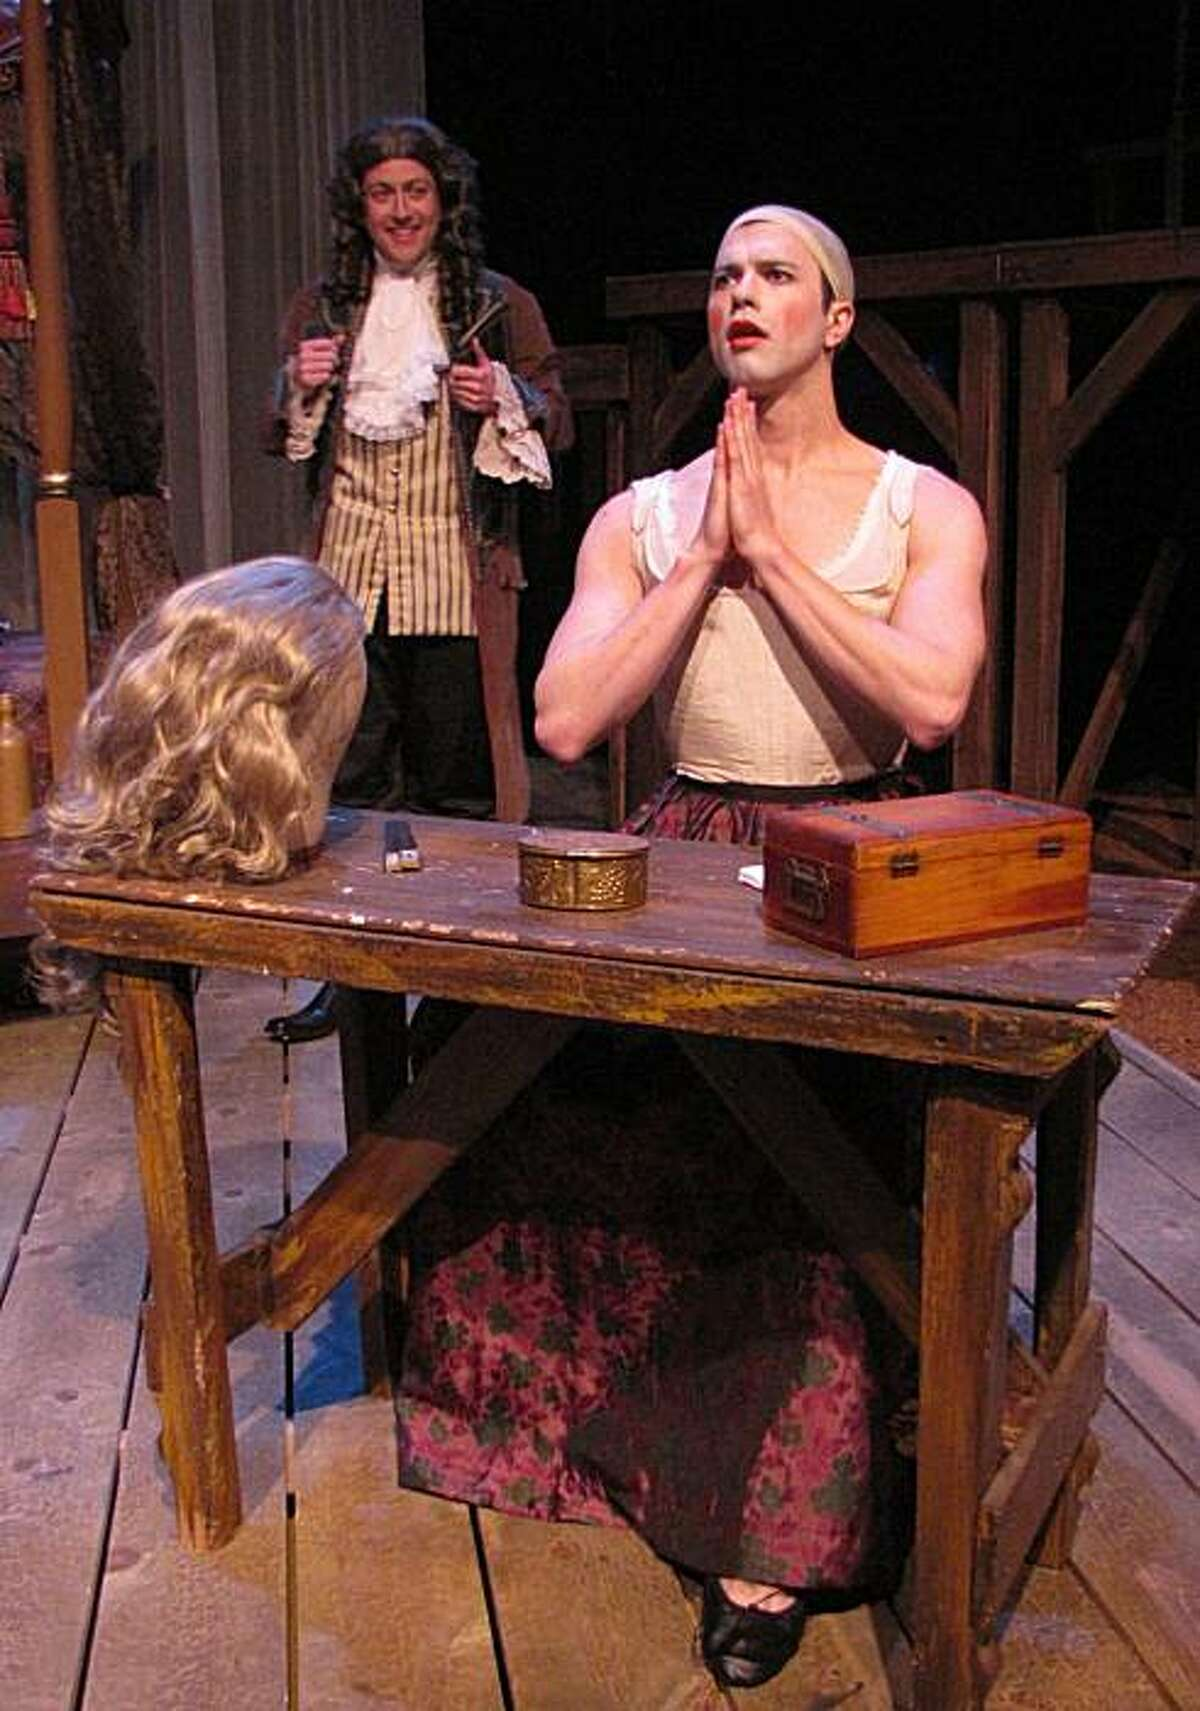 Thomas Gorrebeeck as Kynaston preparing to perform, visited by Samuel Pepys (Jonathan Shue) in City Lights Theater's production of